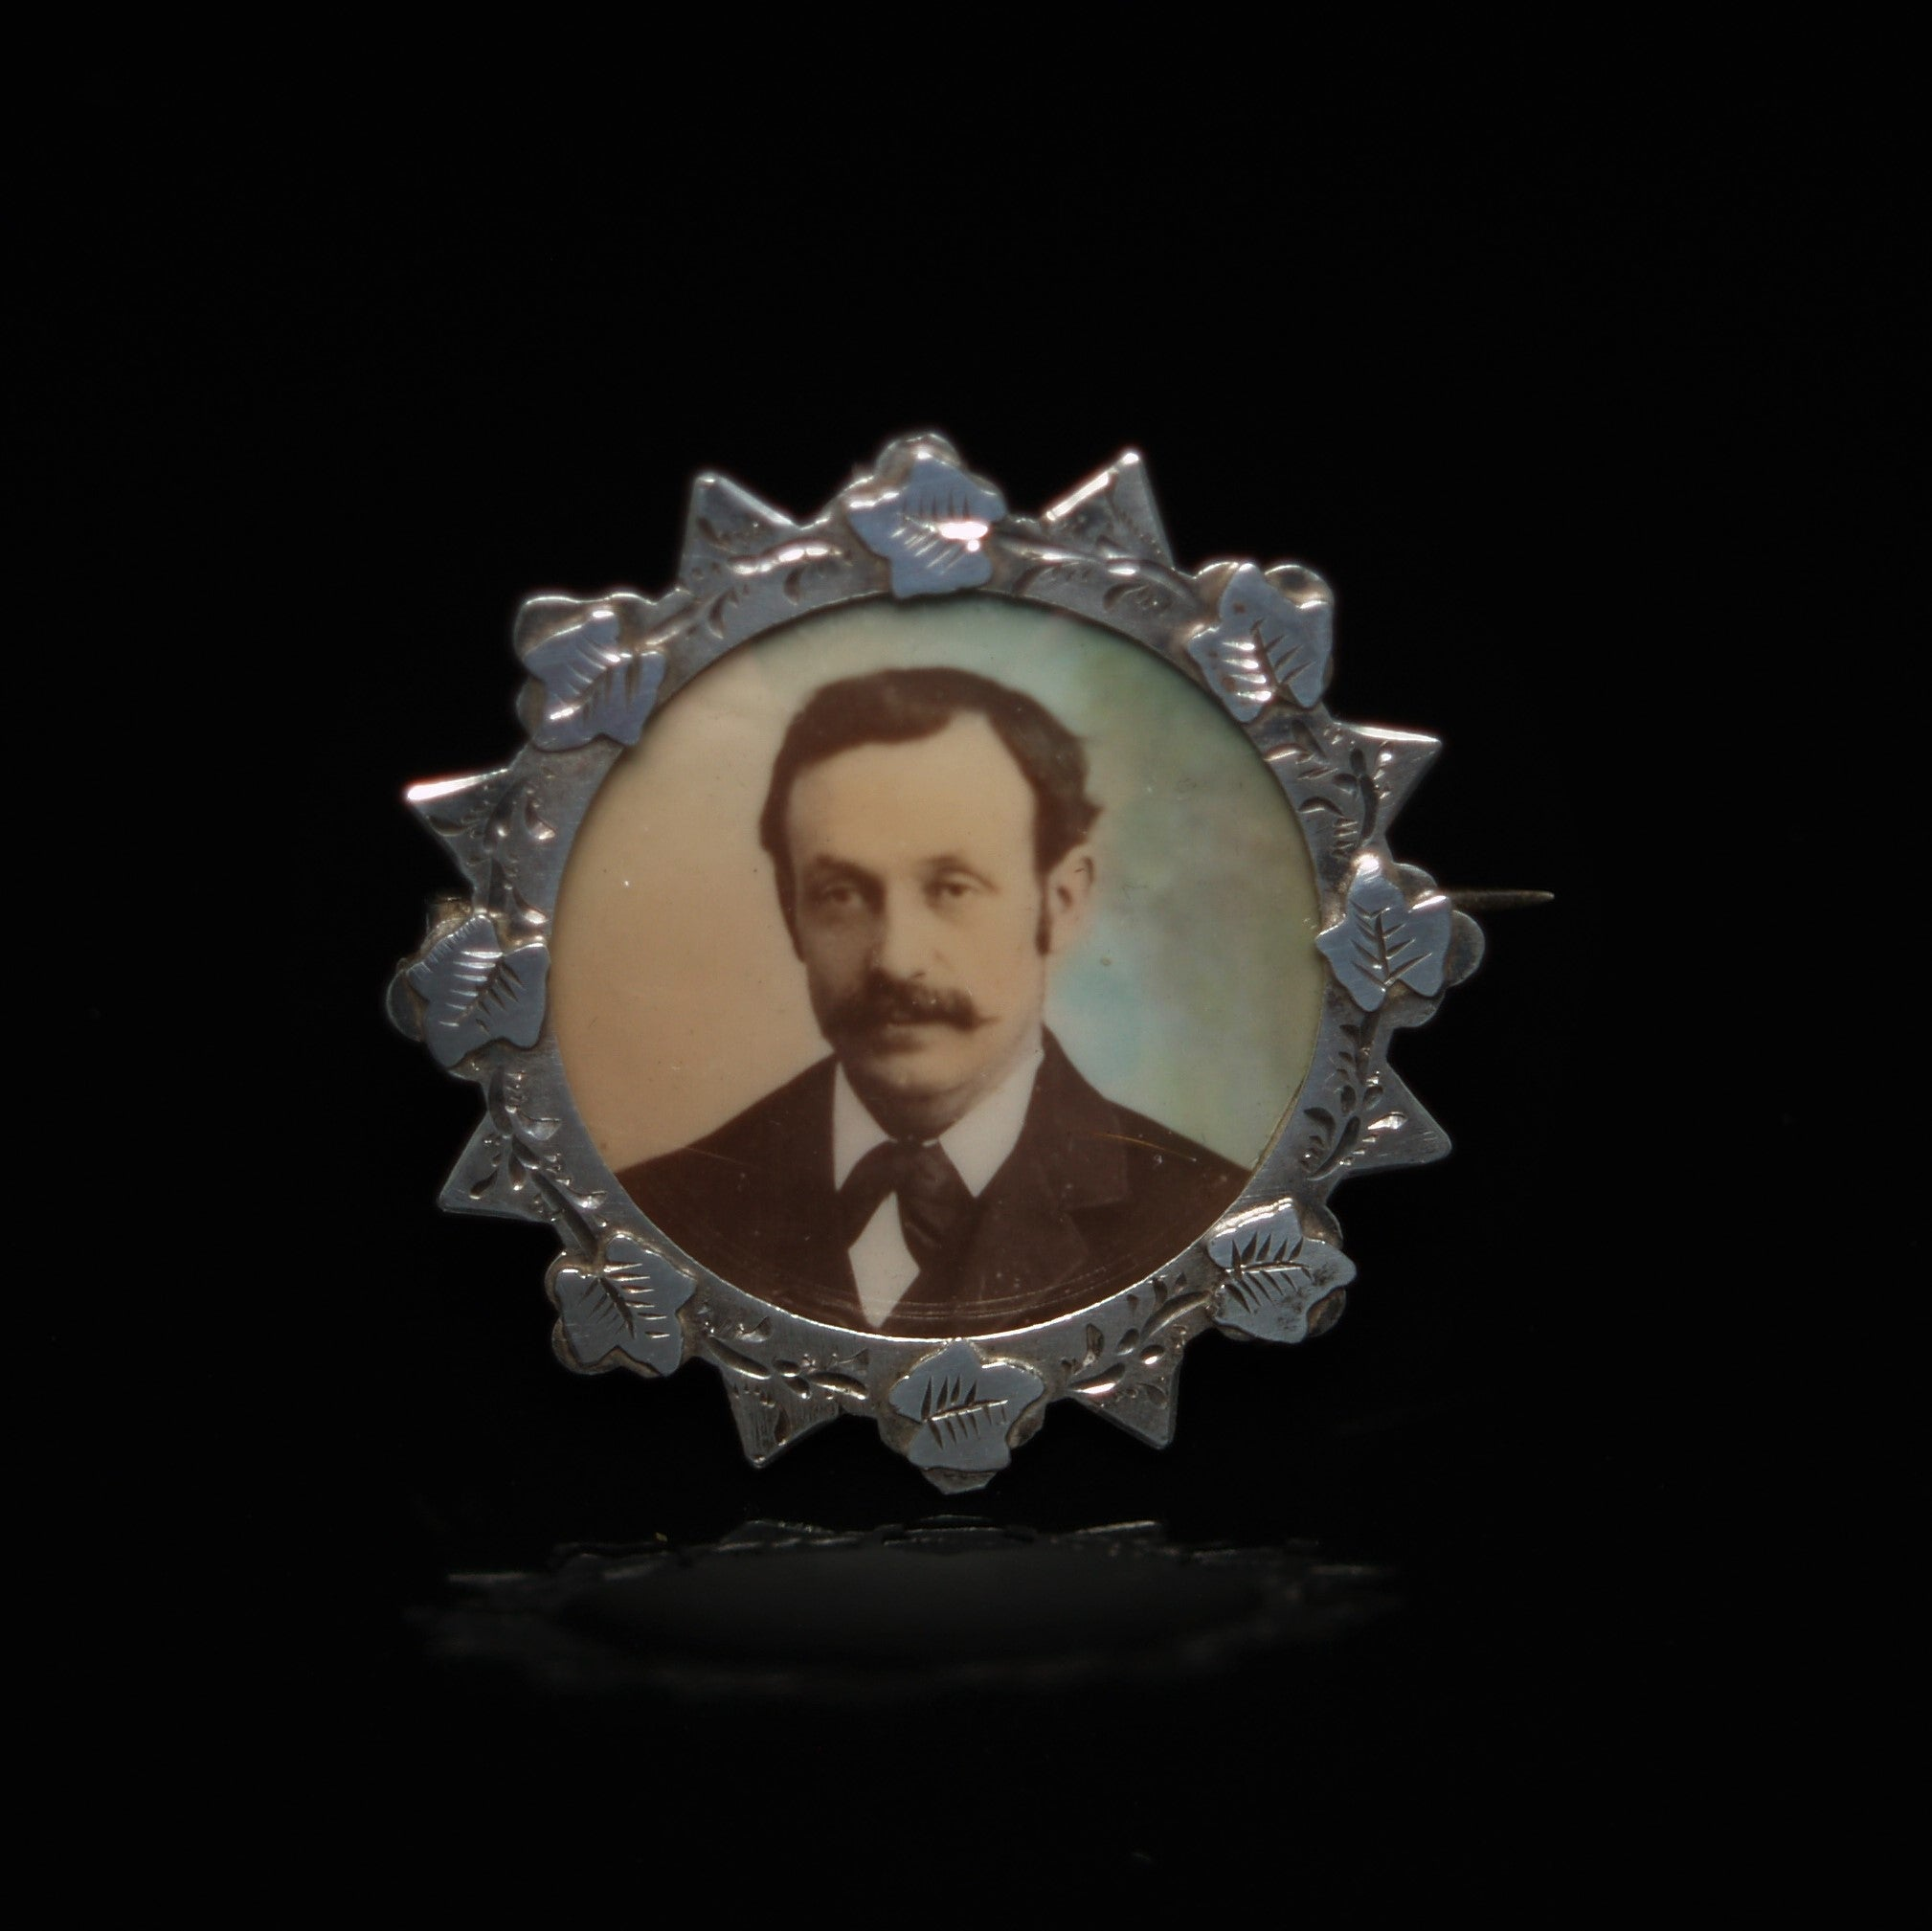 EDWARDIAN STERLING SILVER PICTURE FRAME/BROOCH.